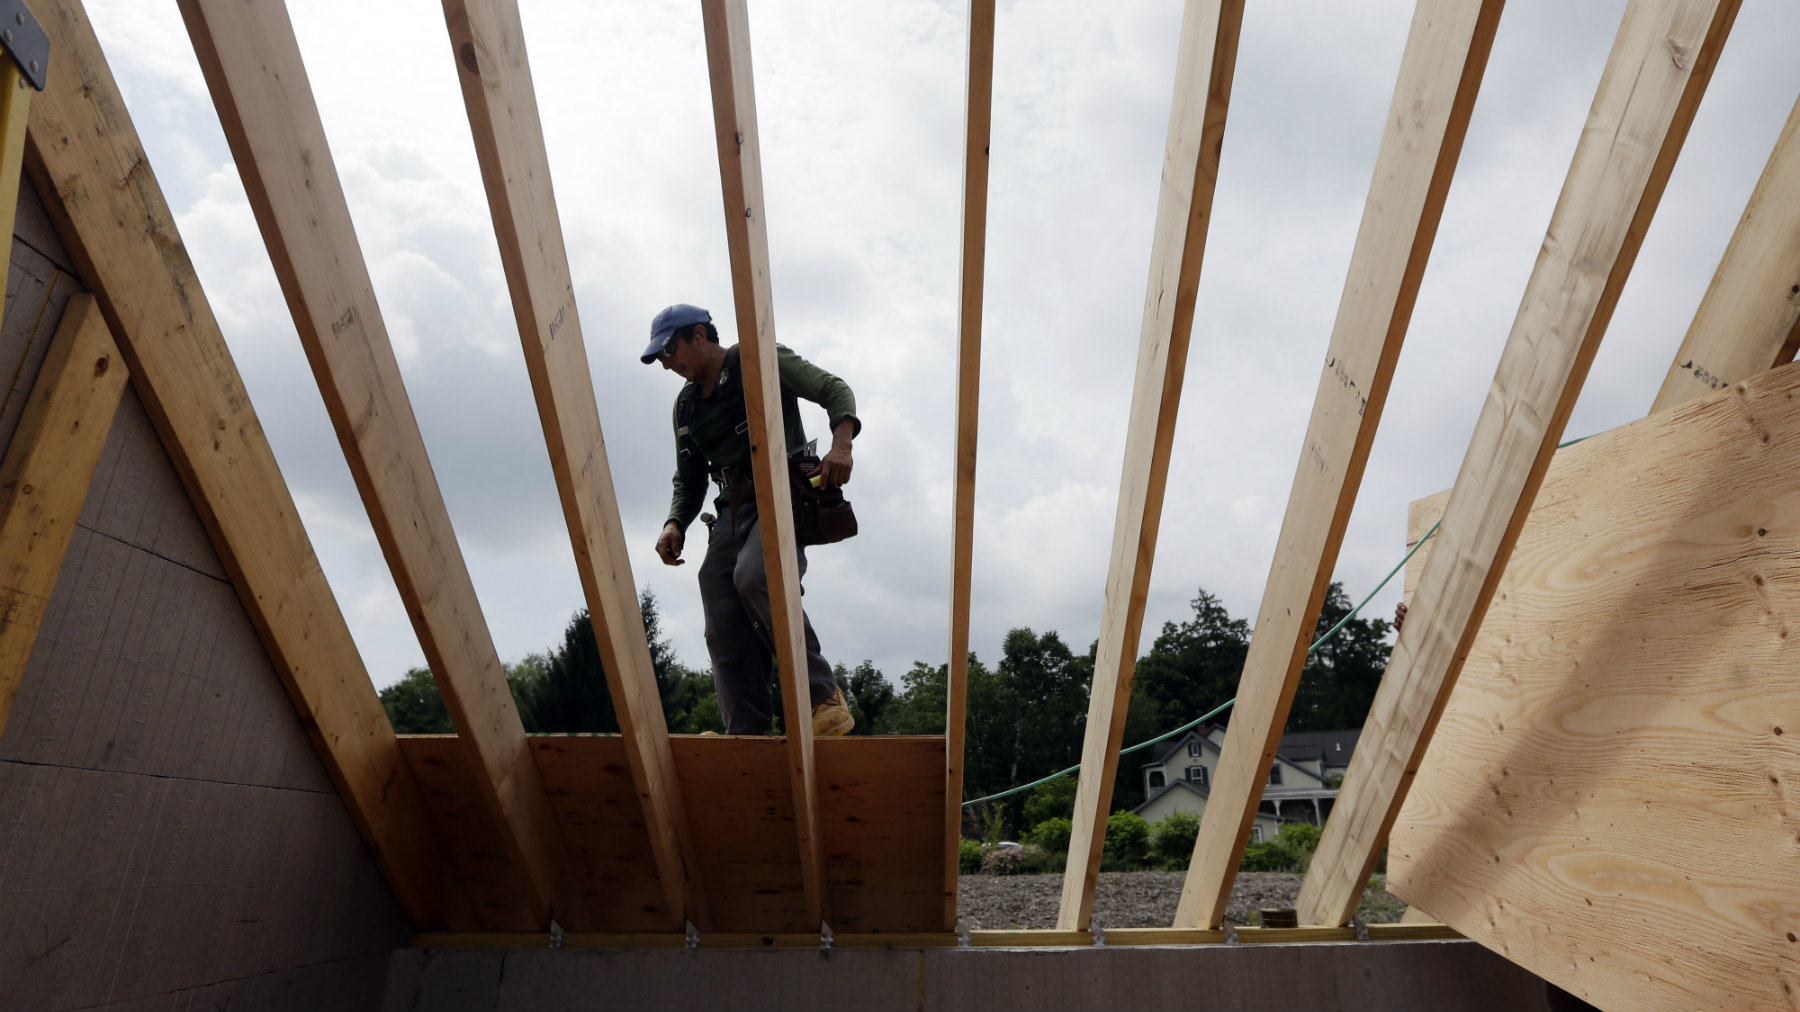 A worker installs a roof on a home in New Paltz, New York.